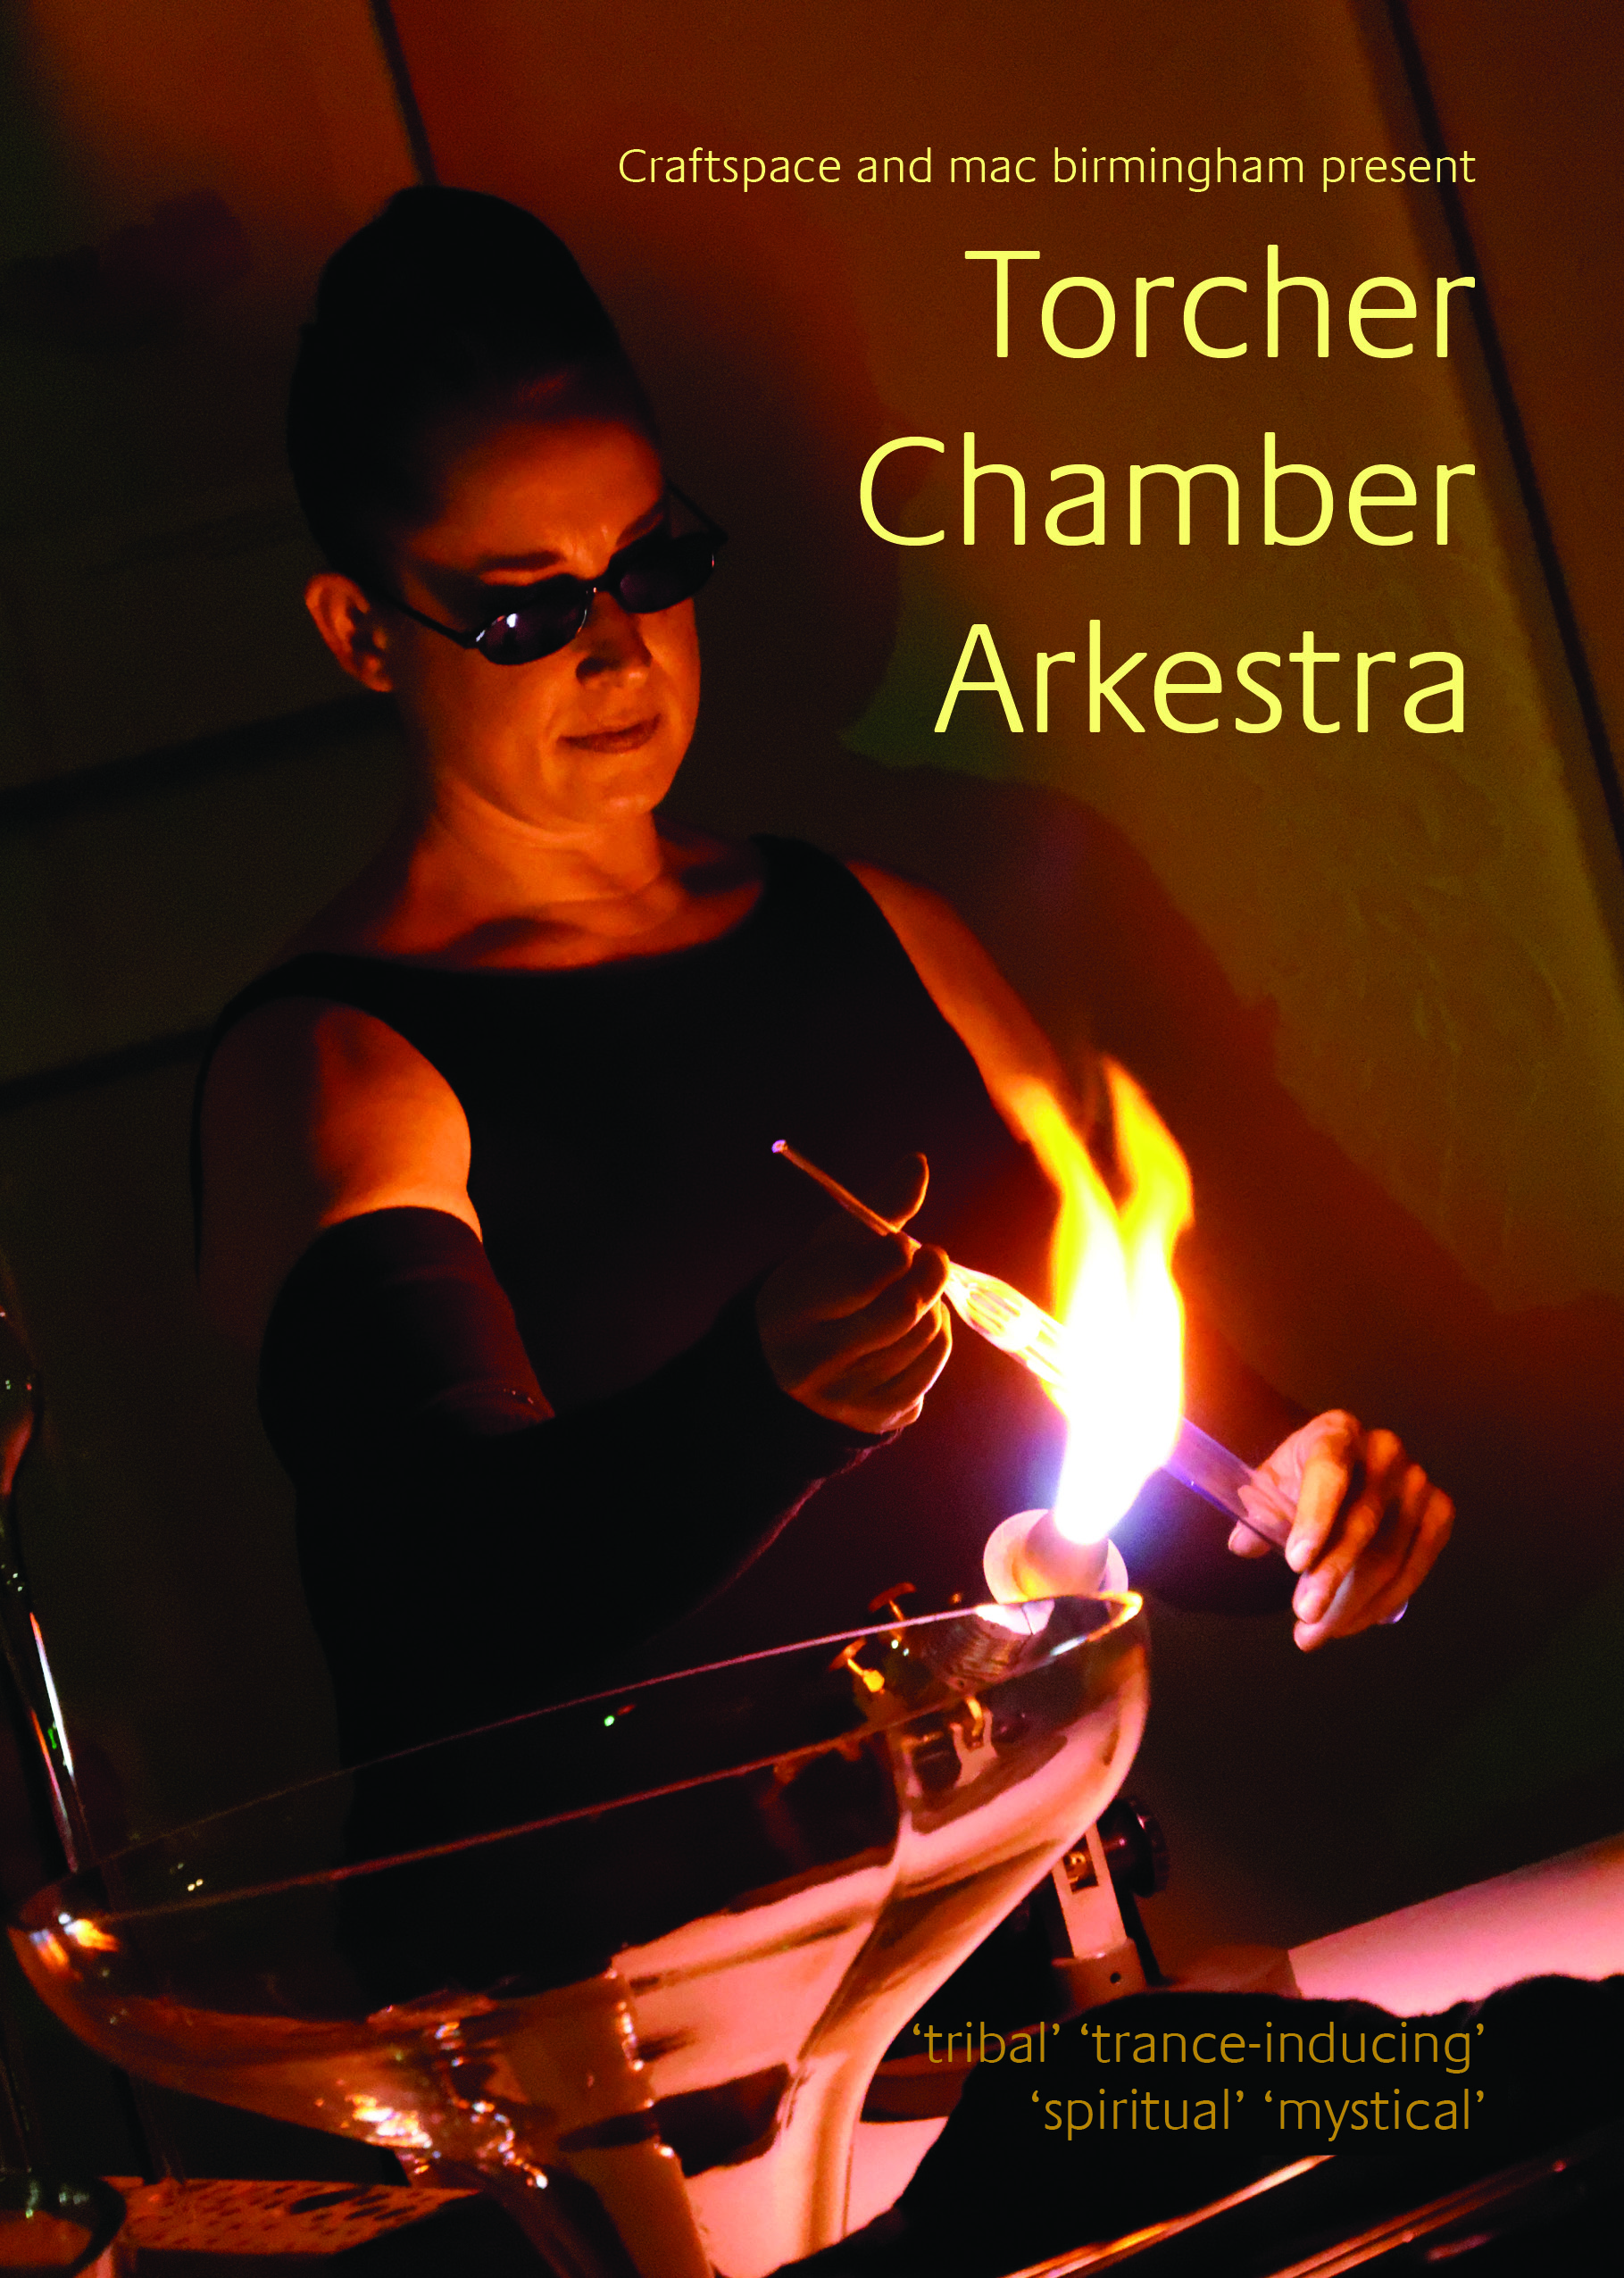 A spellbinding performance with fire, live and electronic music and glass blowing.